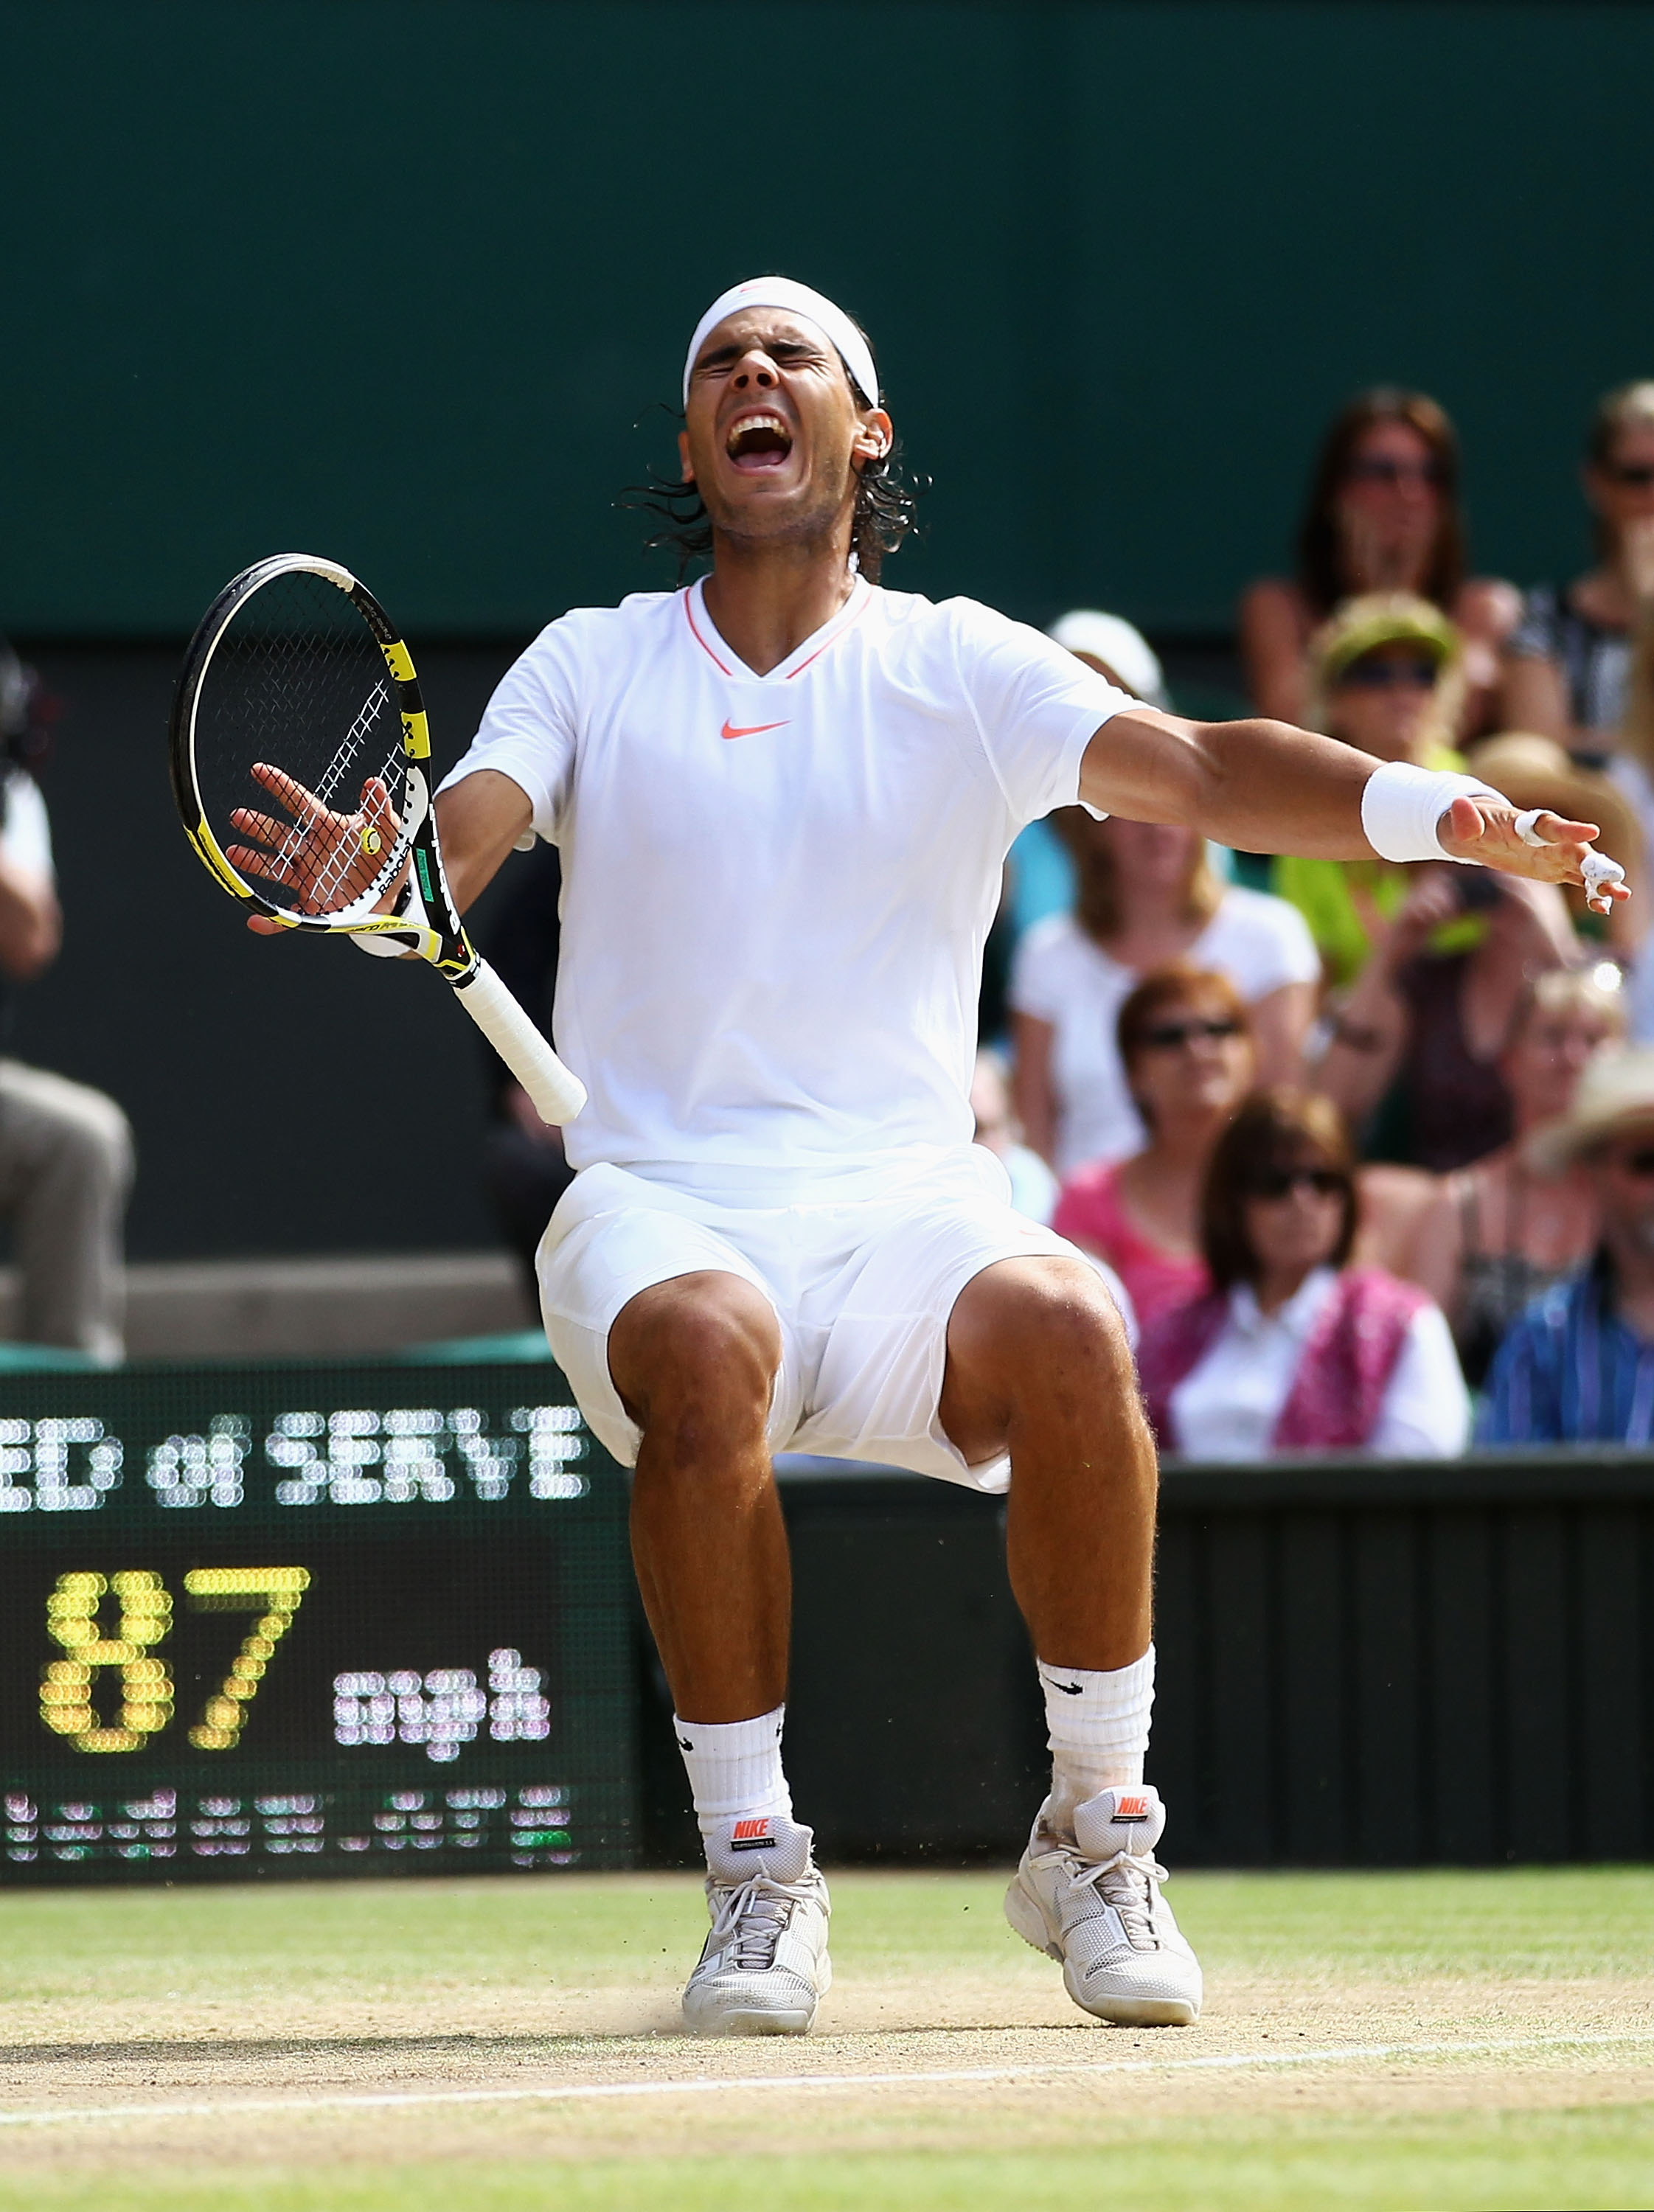 Nadal wins his second Wimbledon title in a v-neck.